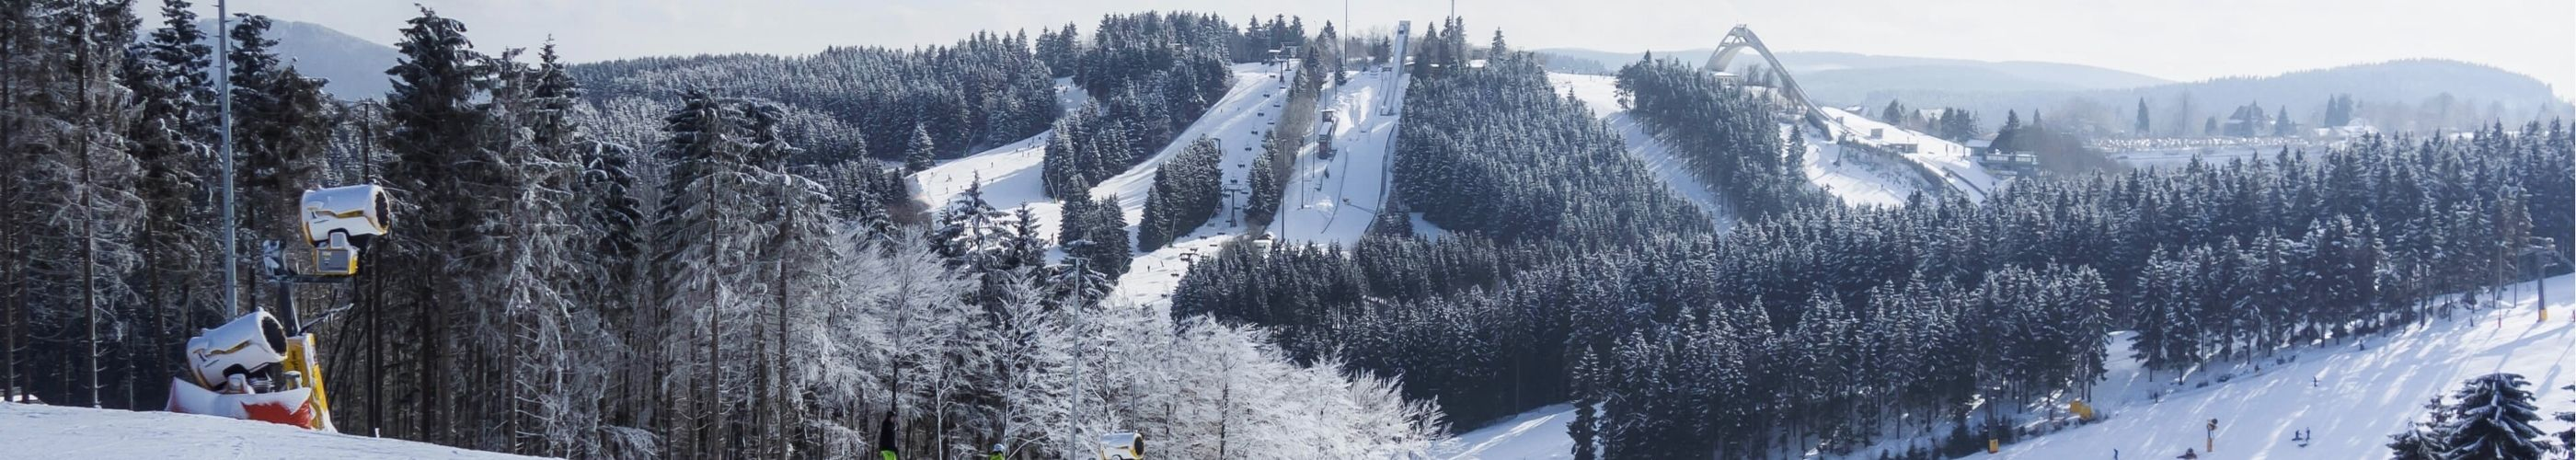 Winter-Panorama Skigebiet Willingen im Sauerland